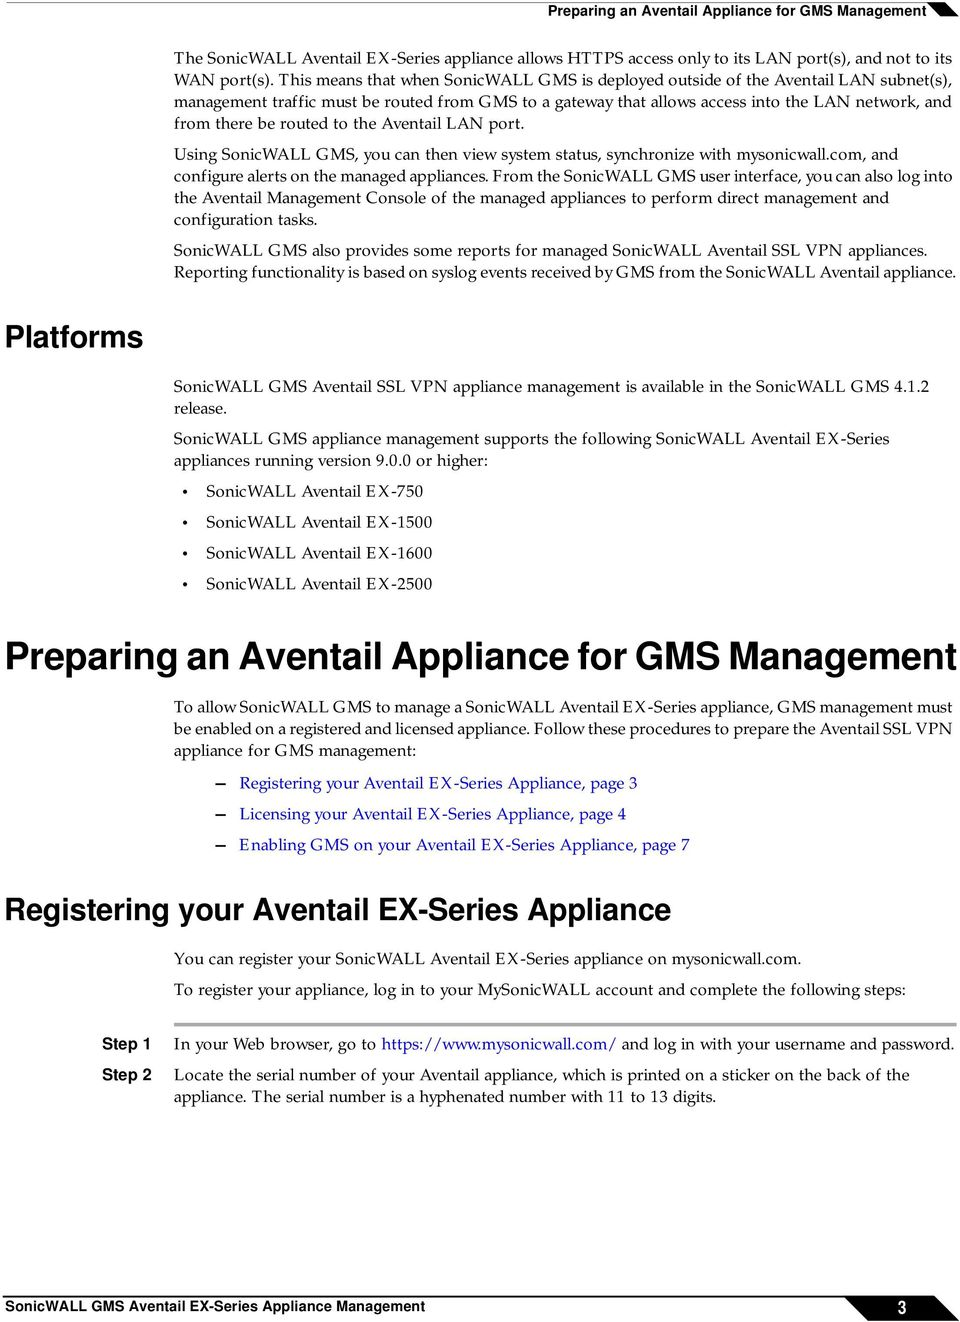 be routed to the Aventail LAN port. Using SonicWALL GMS, you can then view system status, synchronize with mysonicwall.com, and configure alerts on the managed appliances.